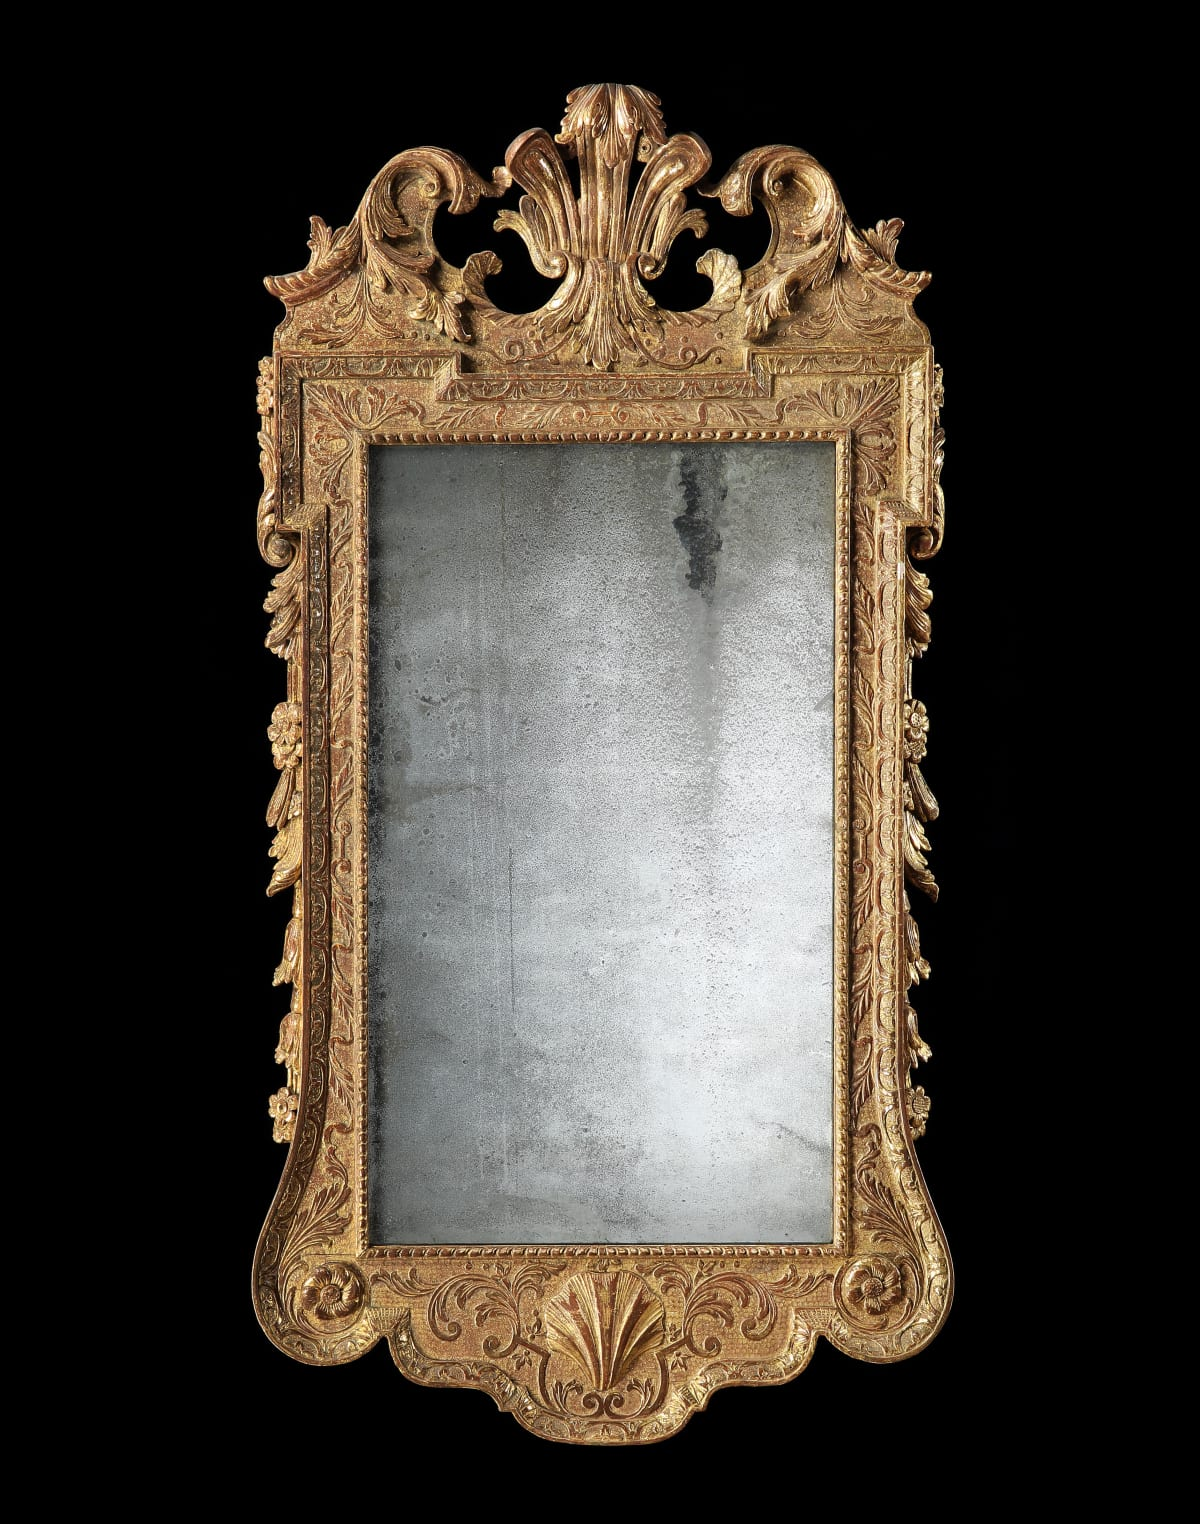 A GEORGE I CARVED AND GILDED MIRROR, ENGLISH, CIRCA 1735